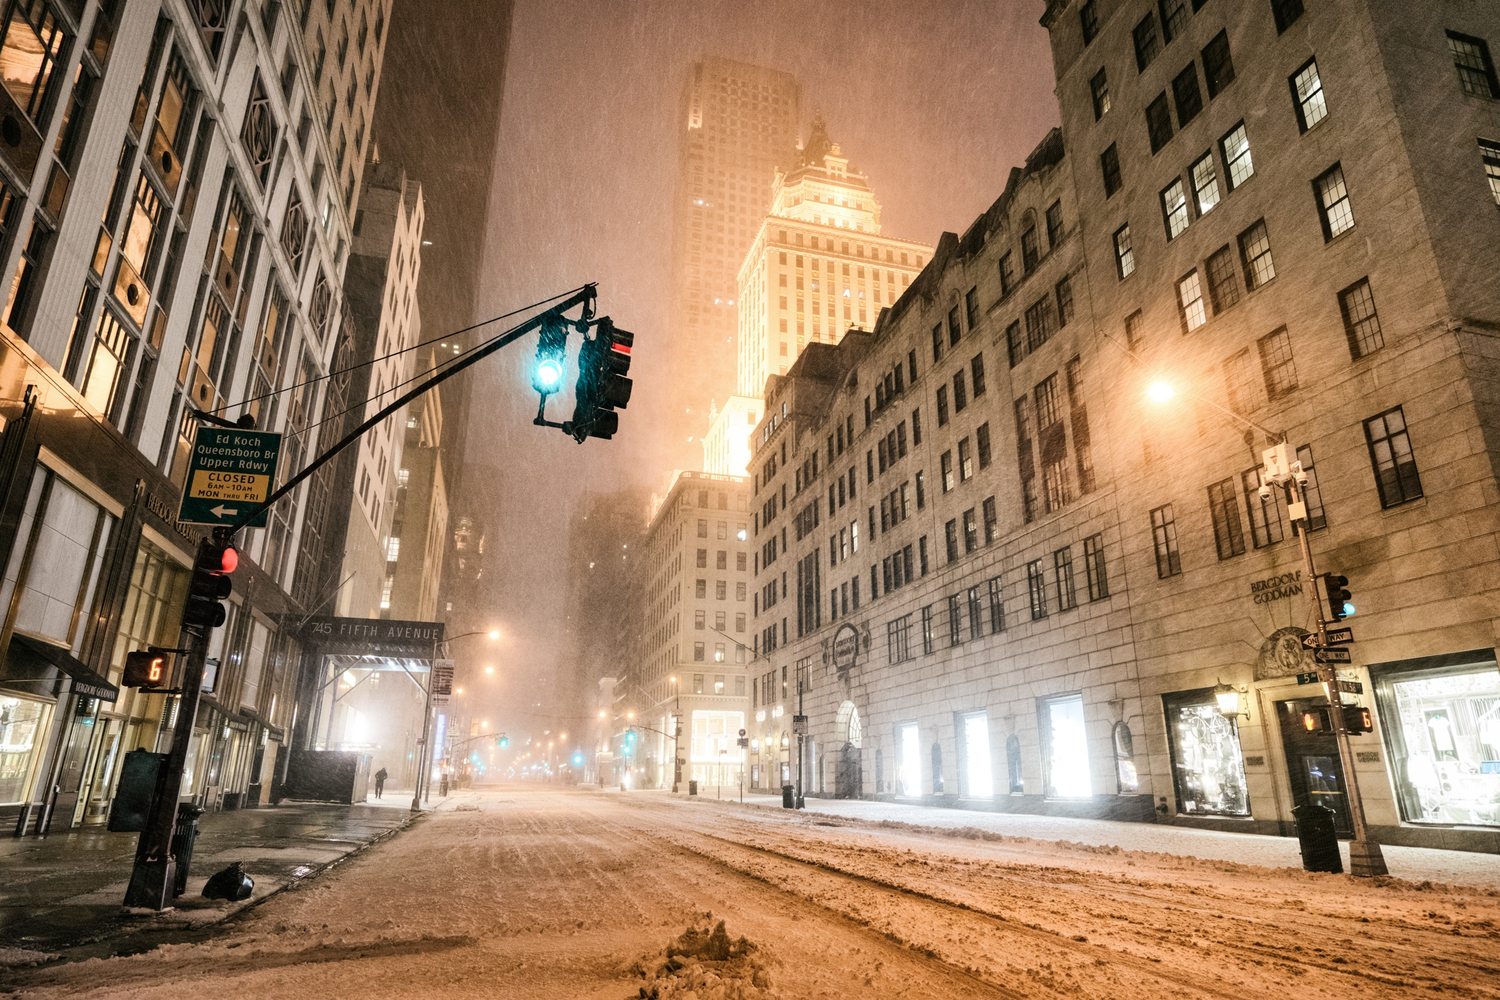 "New York City - Snow - Winter Storm Juno - Empty 5th Avenue - Bergdorf | Juno: The first snowstorm of 2015 in New York City.  ---  (Note: My <a href=""http://www.amazon.com/gp/product/1440339589/ref=as_li_tl?ie=UTF8&camp=1789&creative=9325&creativeASIN=1440339589&linkCode=as2&tag=nyththle0e-20&linkId=ER6GYT5FRYNMEPLF"" rel=""nofollow"">New York photography book</a> released worldwide in stores/online recently and has photos similar to this  [full info below])  ---  I have been photographing New York City during snowstorms at night for the past 5 years. When it comes to experiencing <a href=""http://nythroughthelens.com/tagged/snow"" rel=""nofollow"">New York City in the snow</a>, I relish the challenge. The more gusty, snowy, and brutal the storm, the more of a chance that I will be out in it traipsing around New York City with my cameras in tow.  When I heard that the MTA was suspending all transit service (and most vehicles) at 11 pm, I made the decision to take the train up to the Upper East Side prior to 11 pm to deposit myself up there with the intention of walking from the Upper East Side to Times Square and then walking the several miles back to the Lower East Side (whew!!).  The streets were eerily empty.  Emptier than they are usually at night during snowfall. Since there was a ban on all vehicles aside from snow plows and emergency services, there were practically no cars at all on the streets. Even taxis were banned from the streets!  I walked in the middle of avenues and streets that are usually teeming with cars.  There was an eerie sense of calm.  It was magical.   ---  This is part of a post that I posted to my NYC photography blog. If you are curious enough to look at the photos there, here is the link to the post:  <a href=""http://nythroughthelens.com/post/109291619025/new-york-city-snow-winter-storm-juno-i"" rel=""nofollow"">New York City - Winter Storm Juno</a>   ----  * As mentioned above - My New York City coffee table book that released in stores/online worldwide recently.   Tons of information about my <a href=""http://www.amazon.com/gp/product/1440339589/ref=as_li_tl?ie=UTF8&camp=1789&creative=9325&creativeASIN=1440339589&linkCode=as2&tag=nyththle0e-20&linkId=ER6GYT5FRYNMEPLF"" rel=""nofollow"">New York photography book</a> with sample pages (including where to order and what stores are carrying it) here:  <a href=""http://nythroughthelens.com/post/92873566010/ny-through-the-lens-the-book-i-am-super"" rel=""nofollow"">NY Through The Lens: A New York Coffee Table Book</a> ---   View my New York City photography at my website <a href=""http://nythroughthelens.com/"" rel=""nofollow"">NY Through The Lens</a>.  View my Travel photography at my travel blog: <a href=""http://travelinglens.me/"" rel=""nofollow"">Traveling Lens</a>.  Interested in my work and have questions about PR and media? Check out my:  <a href=""http://nythroughthelens.com/about"" rel=""nofollow"">About Page</a> 